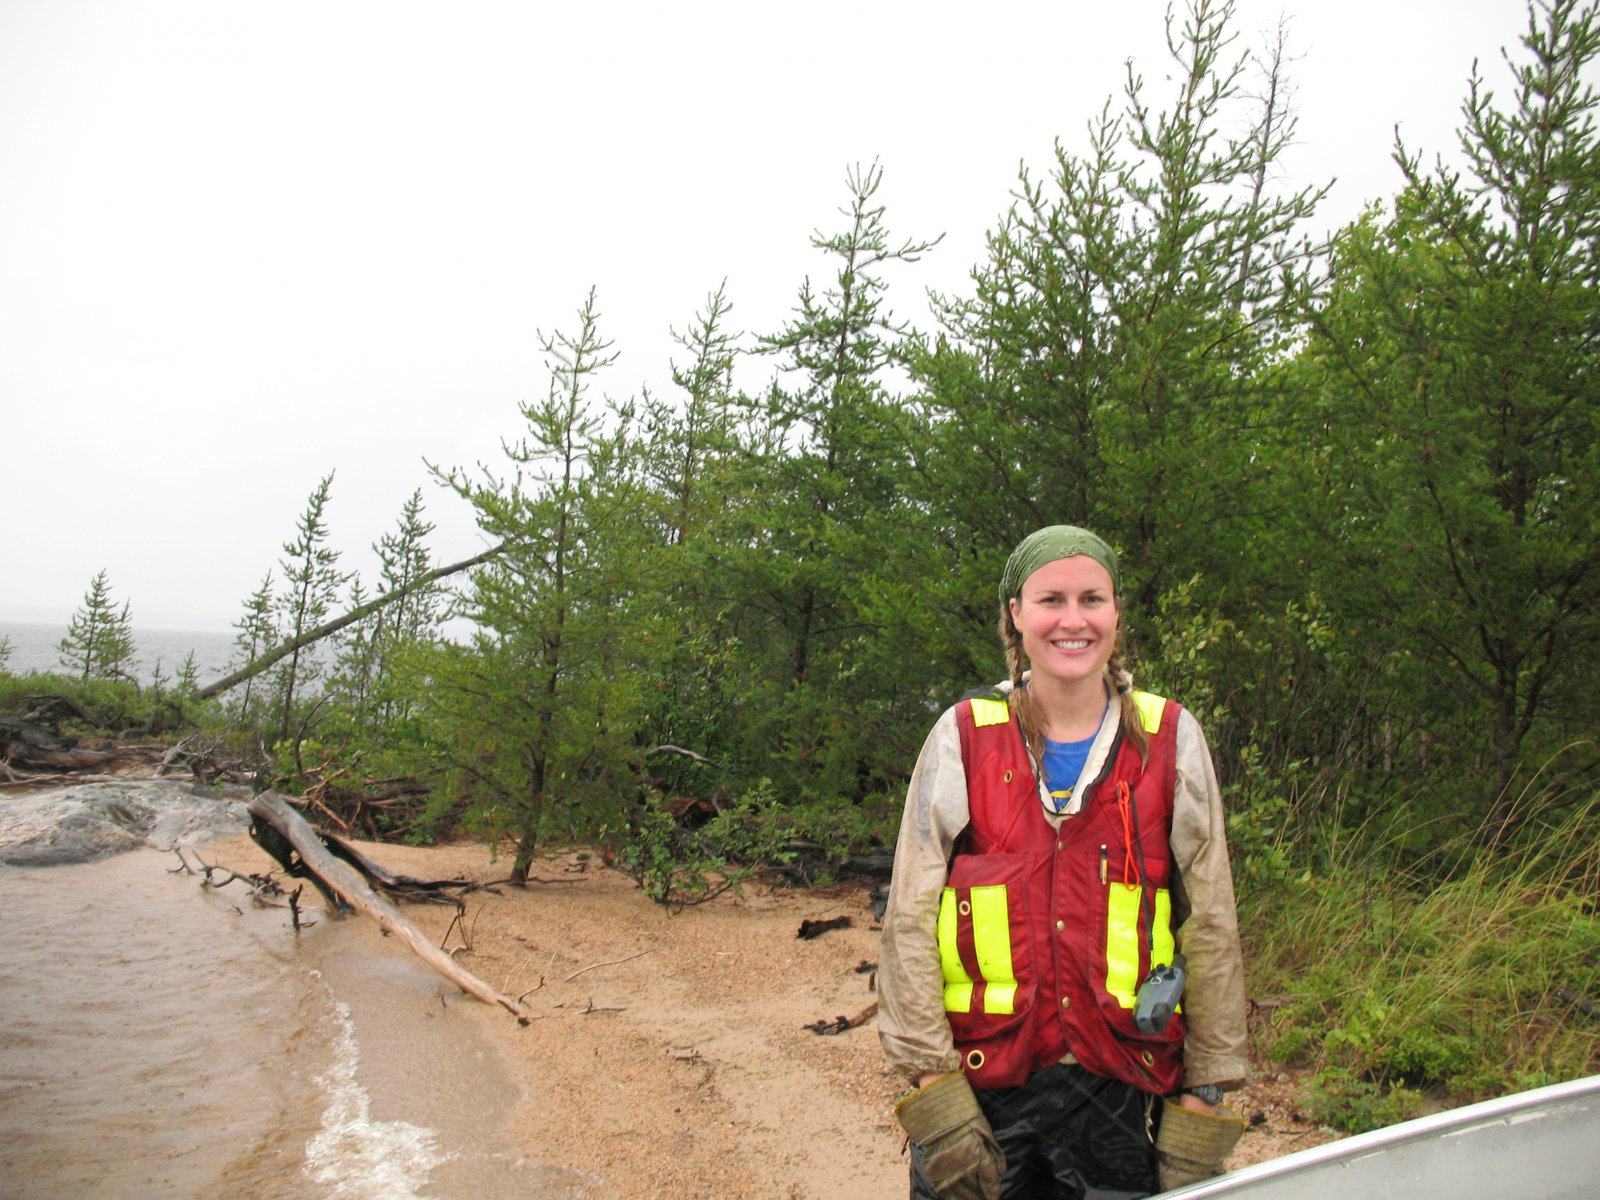 Julee Boan, who leads Ontario Nature's northern programming as its boreal program manager, conducts field research. File Photo by Ontario Nature